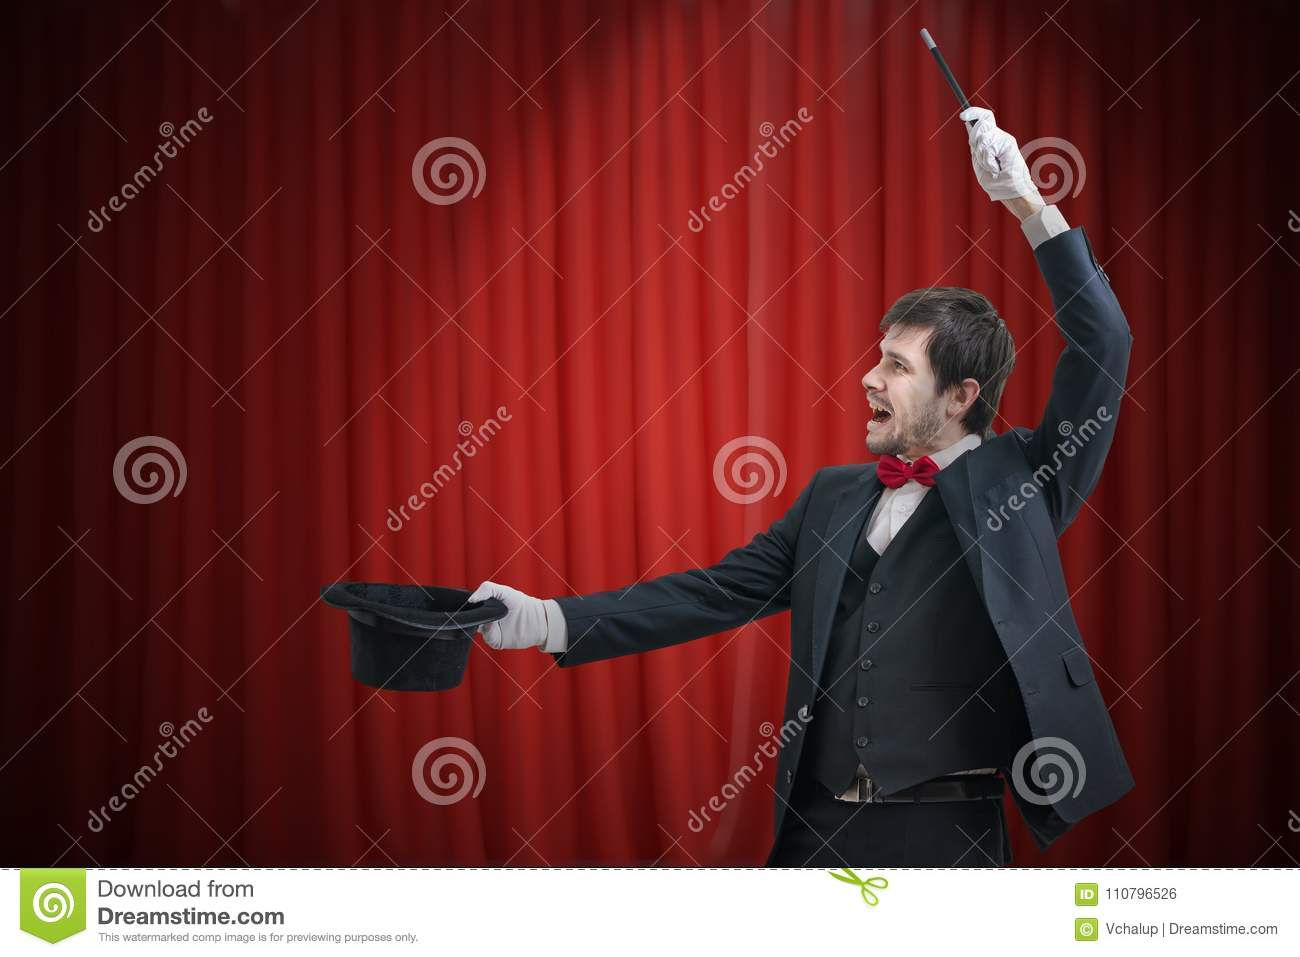 Happy magician or illusionist is showing magic trick. Red curtains in background